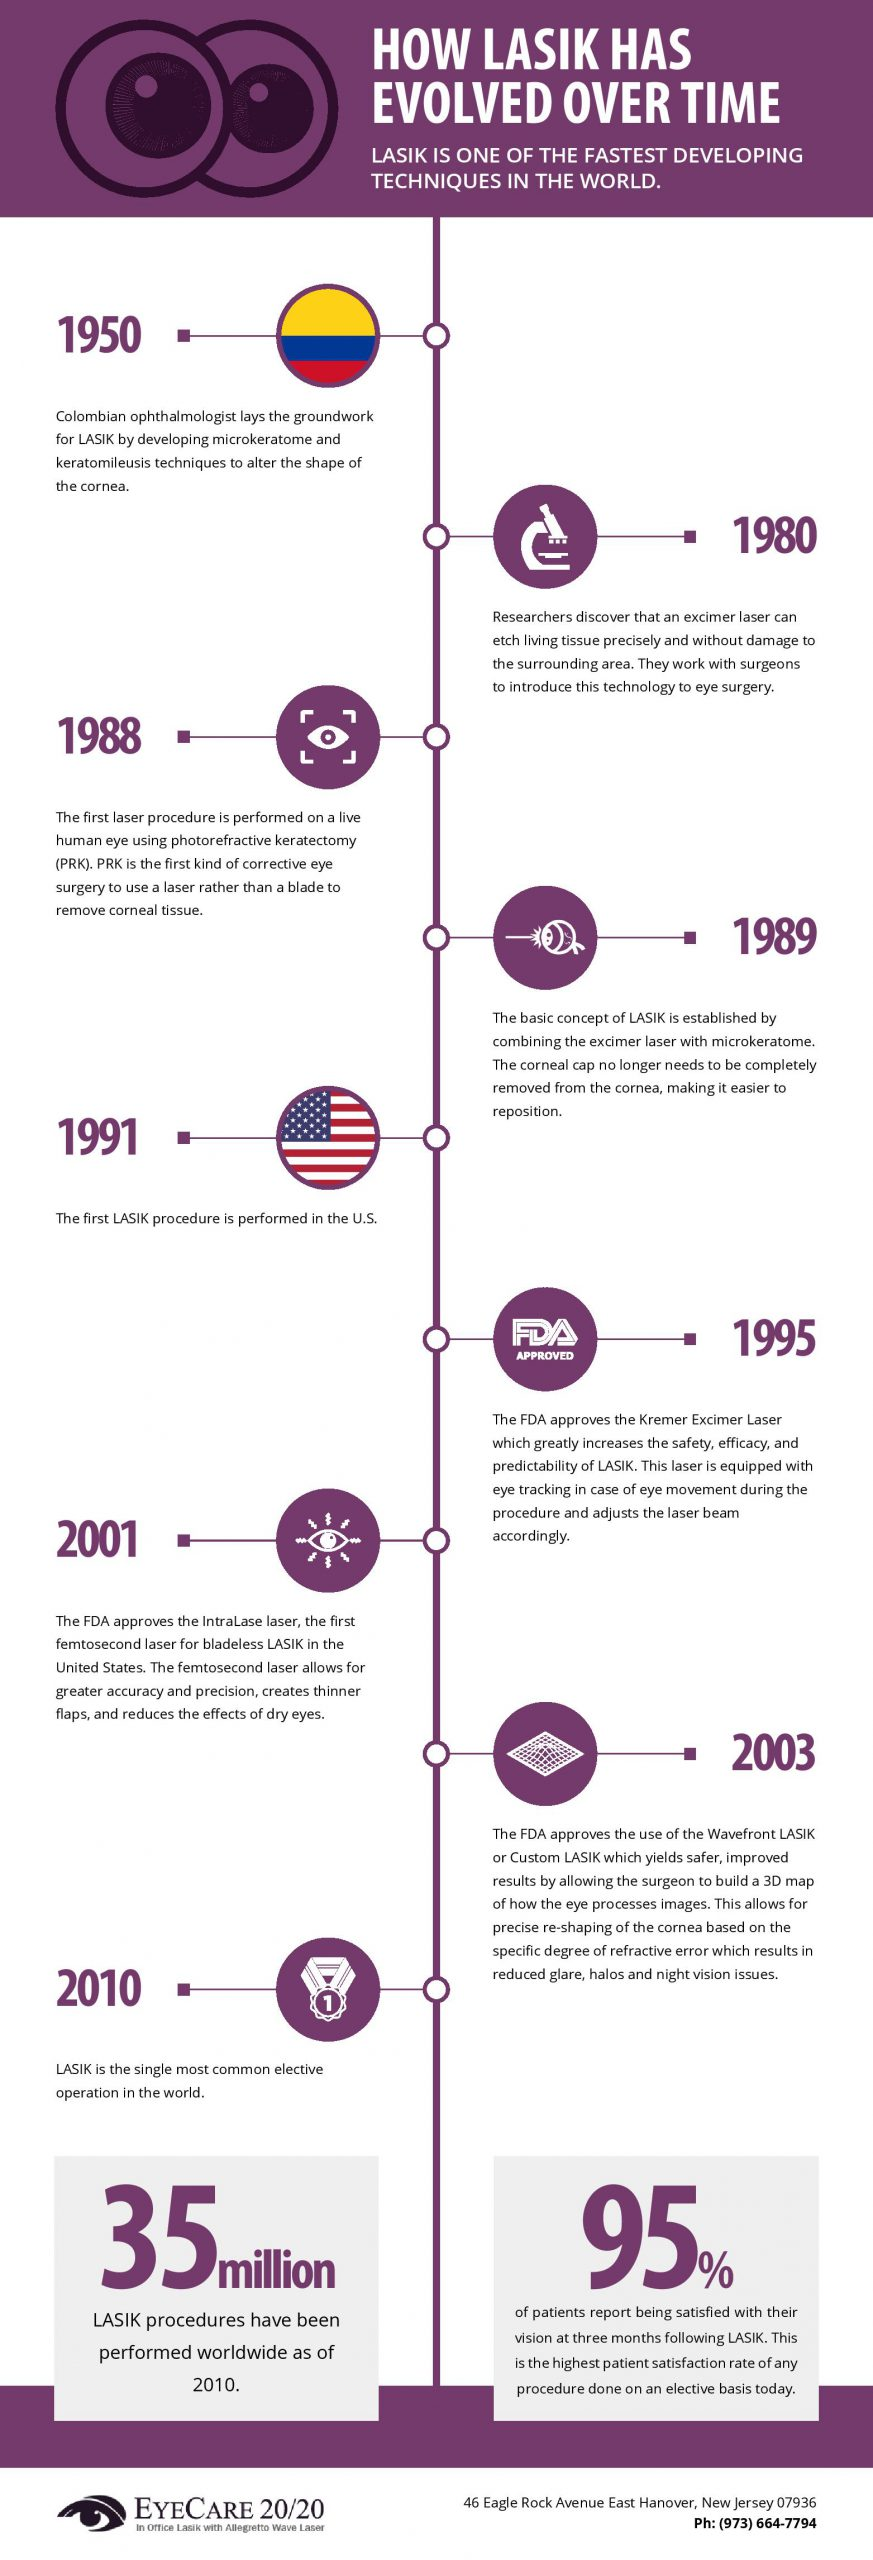 How Lasik Has Evolved Over Time